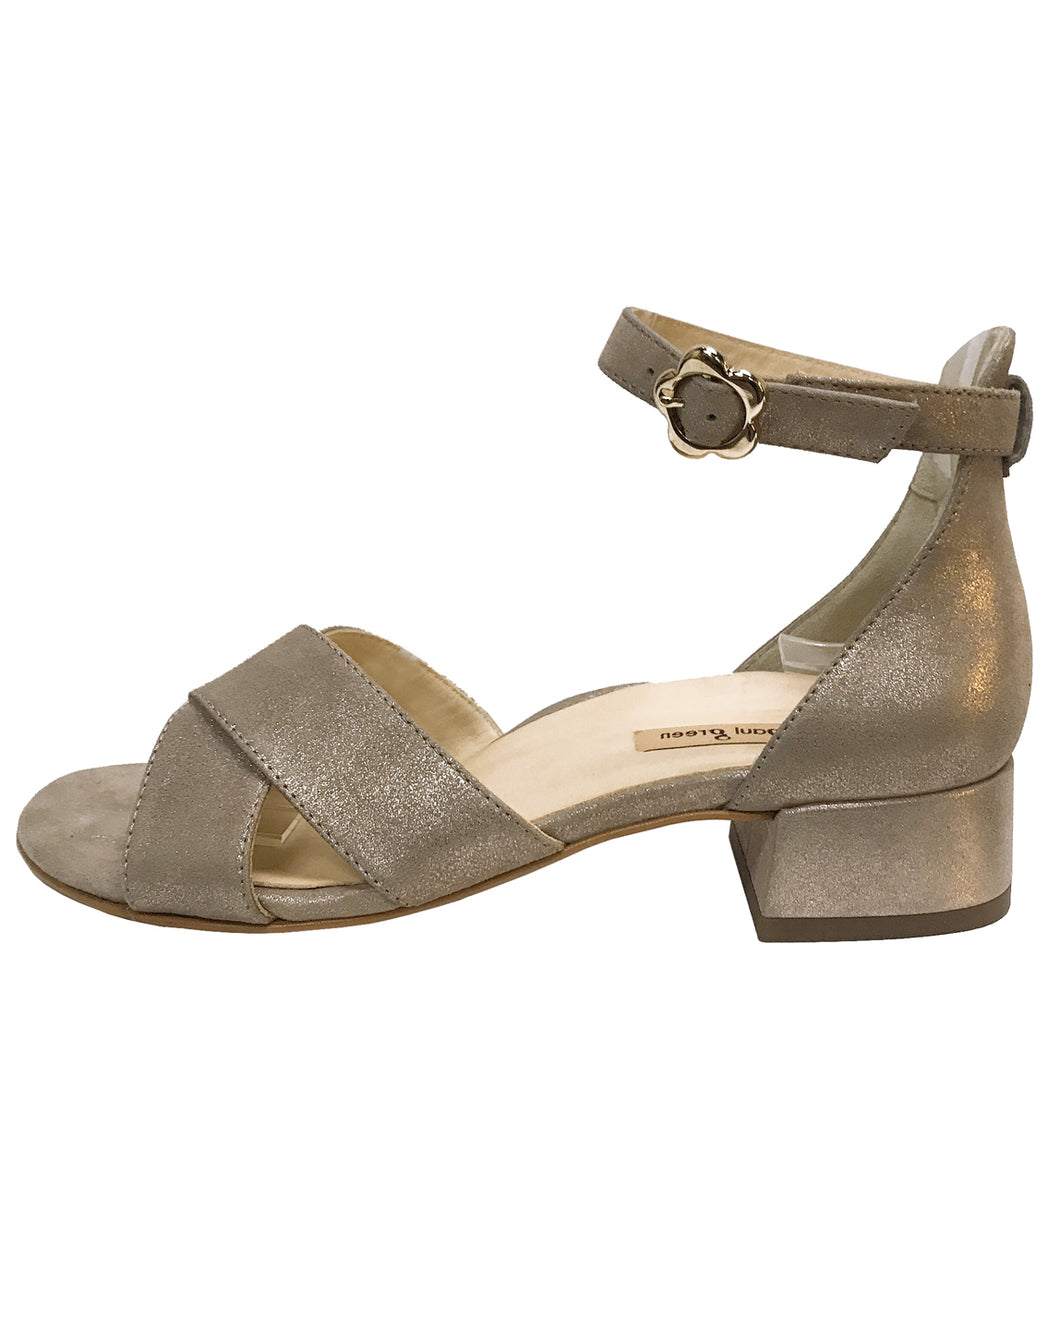 PAUL GREEN 7139 ANKLE STRAP HEEL METALIC CHAMPAGNE